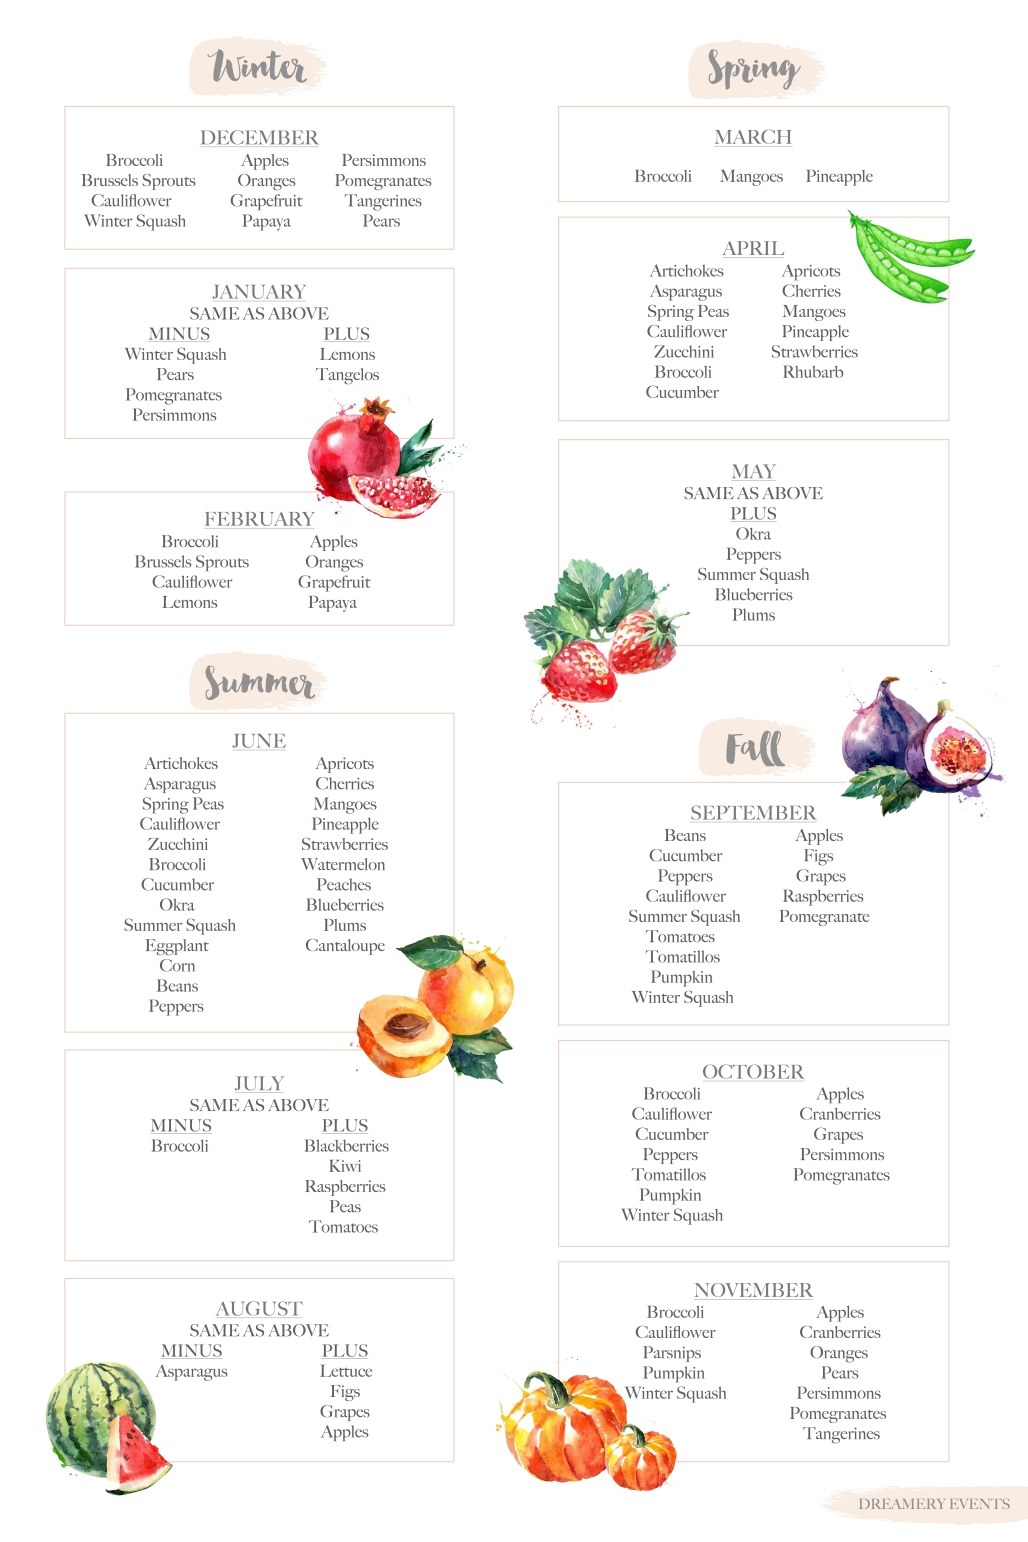 Eating With The Seasons || A Monthly Guide || Dreamery Events